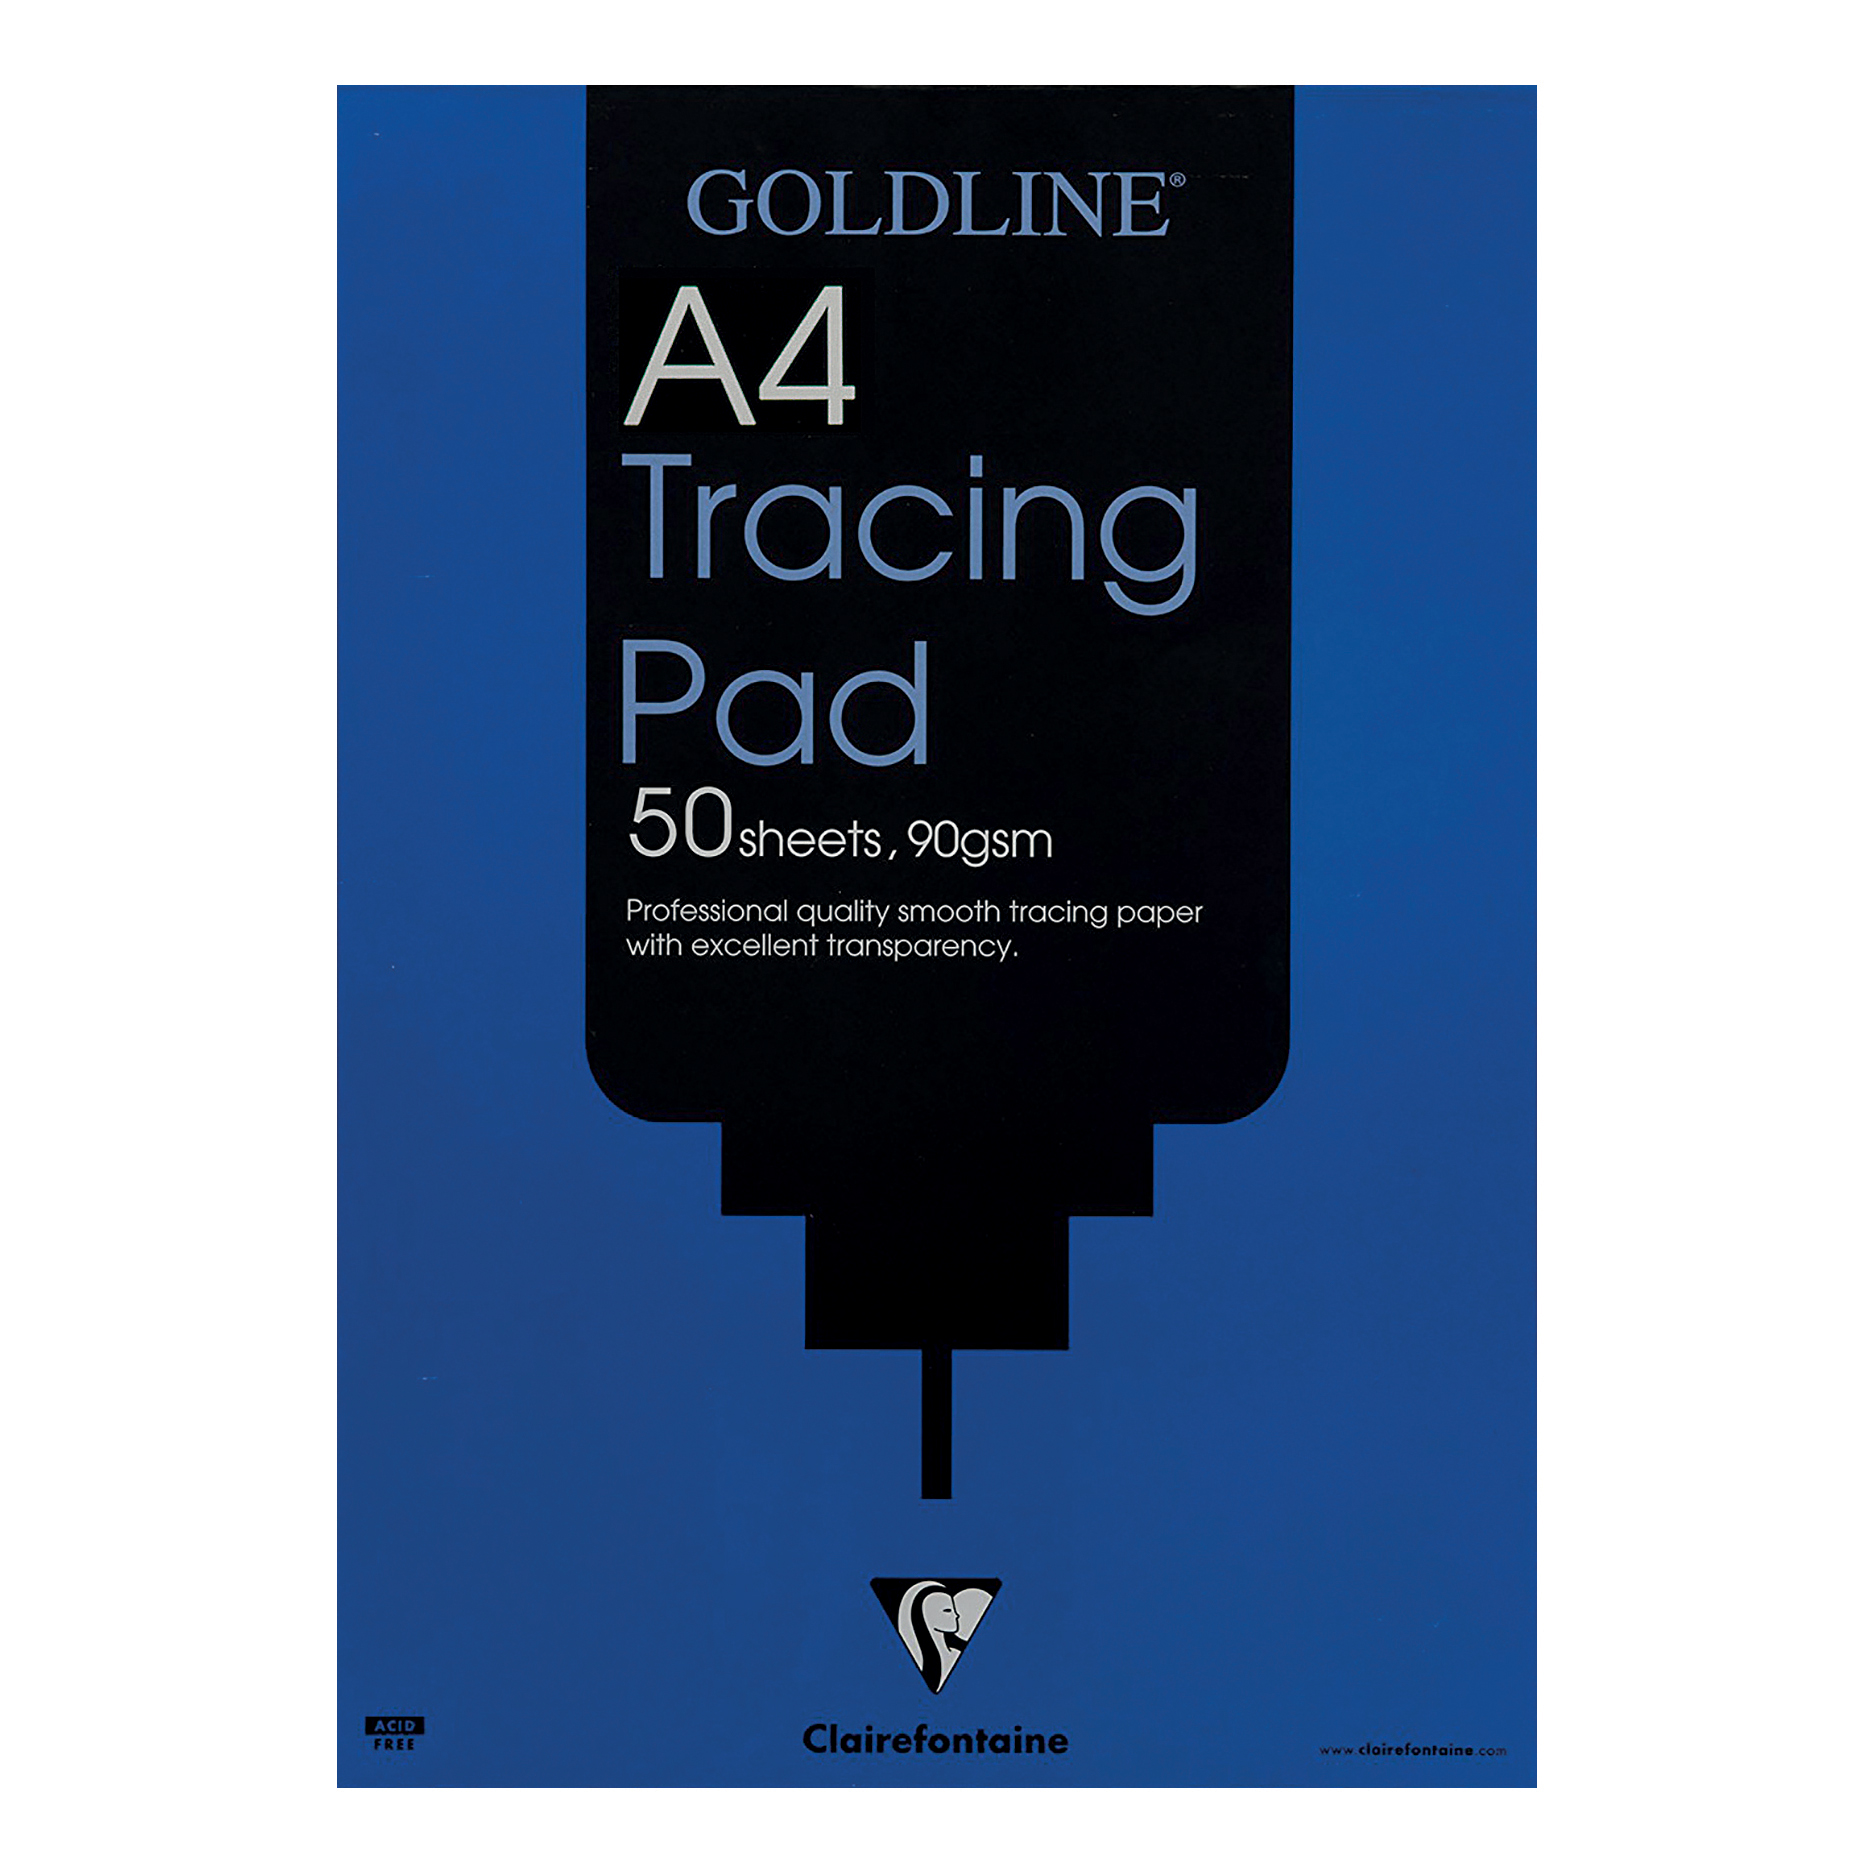 Tracing paper Goldline Professional Tracing Pad 90gsm Acid-free Paper 50 Sheets A4 Ref GPT1A4Z Pack 5